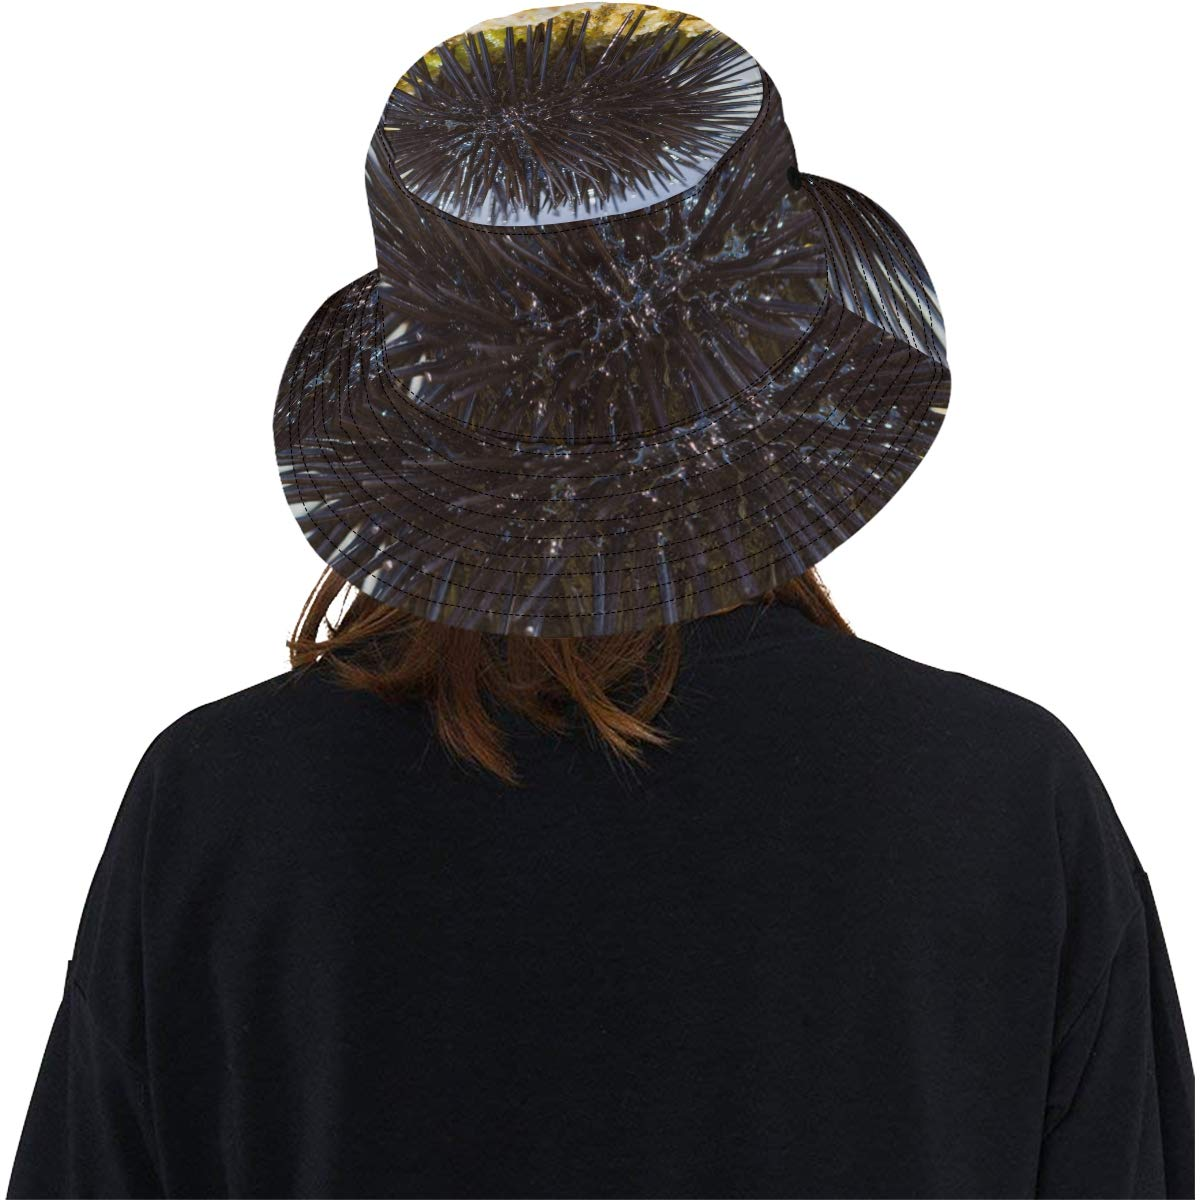 Sea Urchin Covered with Thorns New Summer Unisex Cotton Fashion Fishing Sun Bucket Hats for Kid Teens Women and Men with Customize Top Packable Fisherman Cap for Outdoor Travel